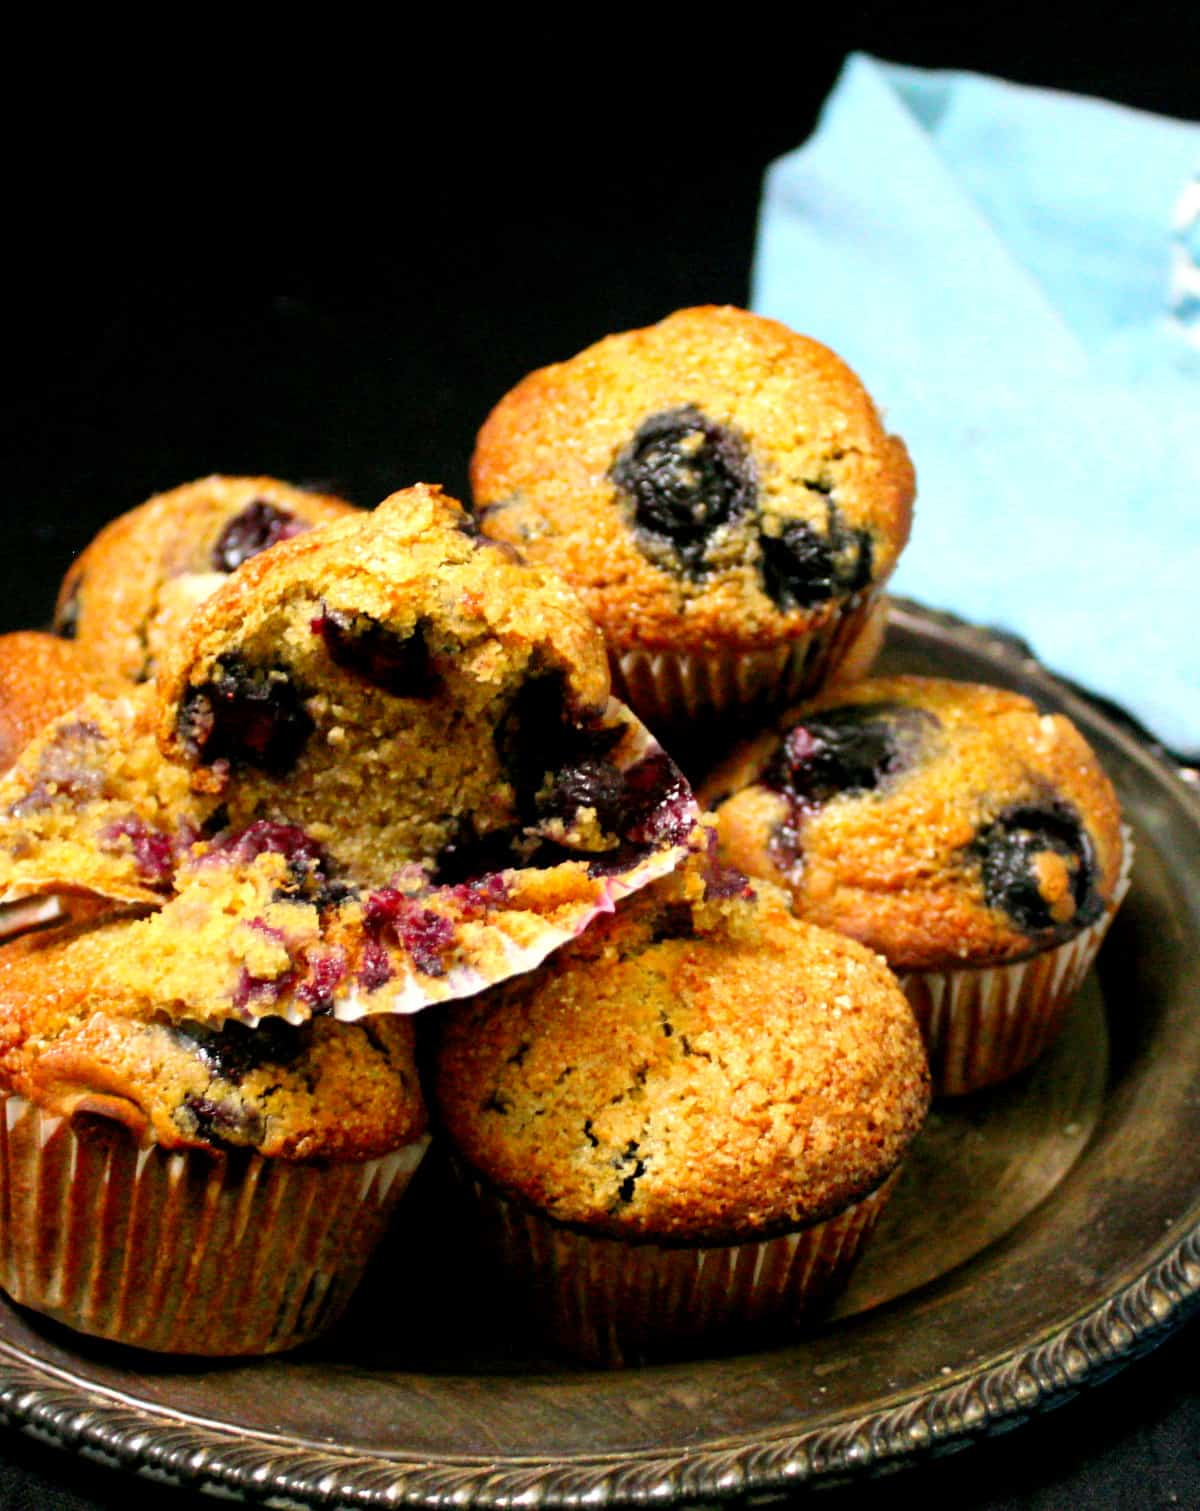 A front shot showing a partially eaten vegan blueberry sourdough muffin with others in a silver plate and a blue napkin.